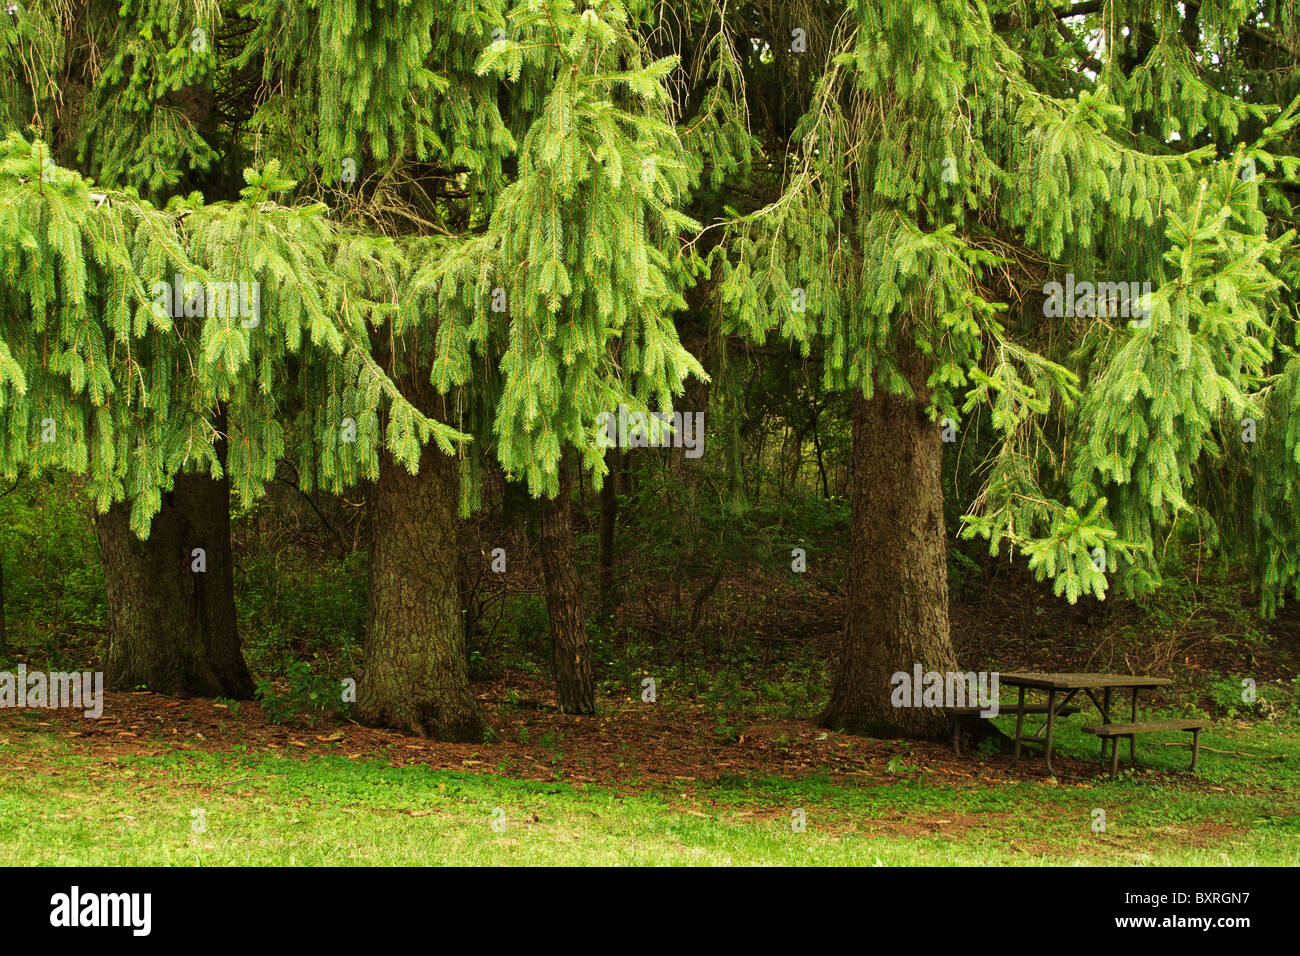 Evergreen trees and secluded picnic table. Moraine Hills State Park, Illinois. - Stock Image